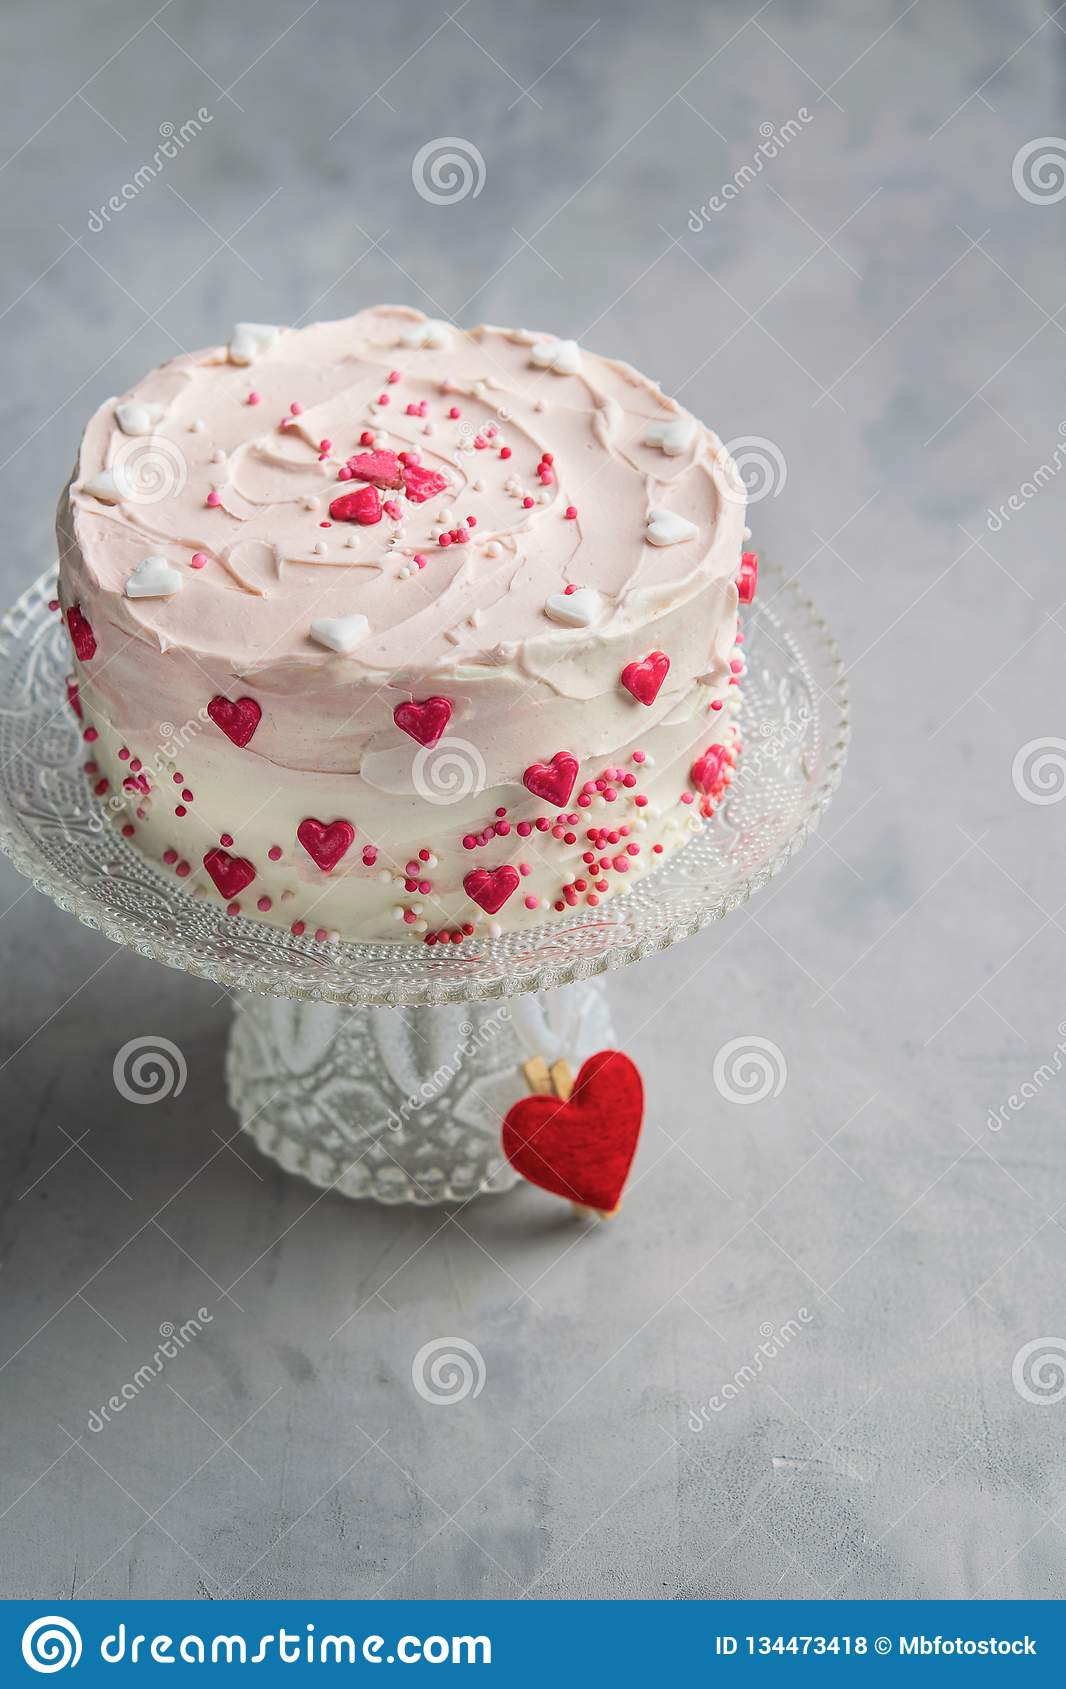 Phenomenal Birthday Cake For Valentine S Day With Pink Hearts And Colorful Funny Birthday Cards Online Fluifree Goldxyz